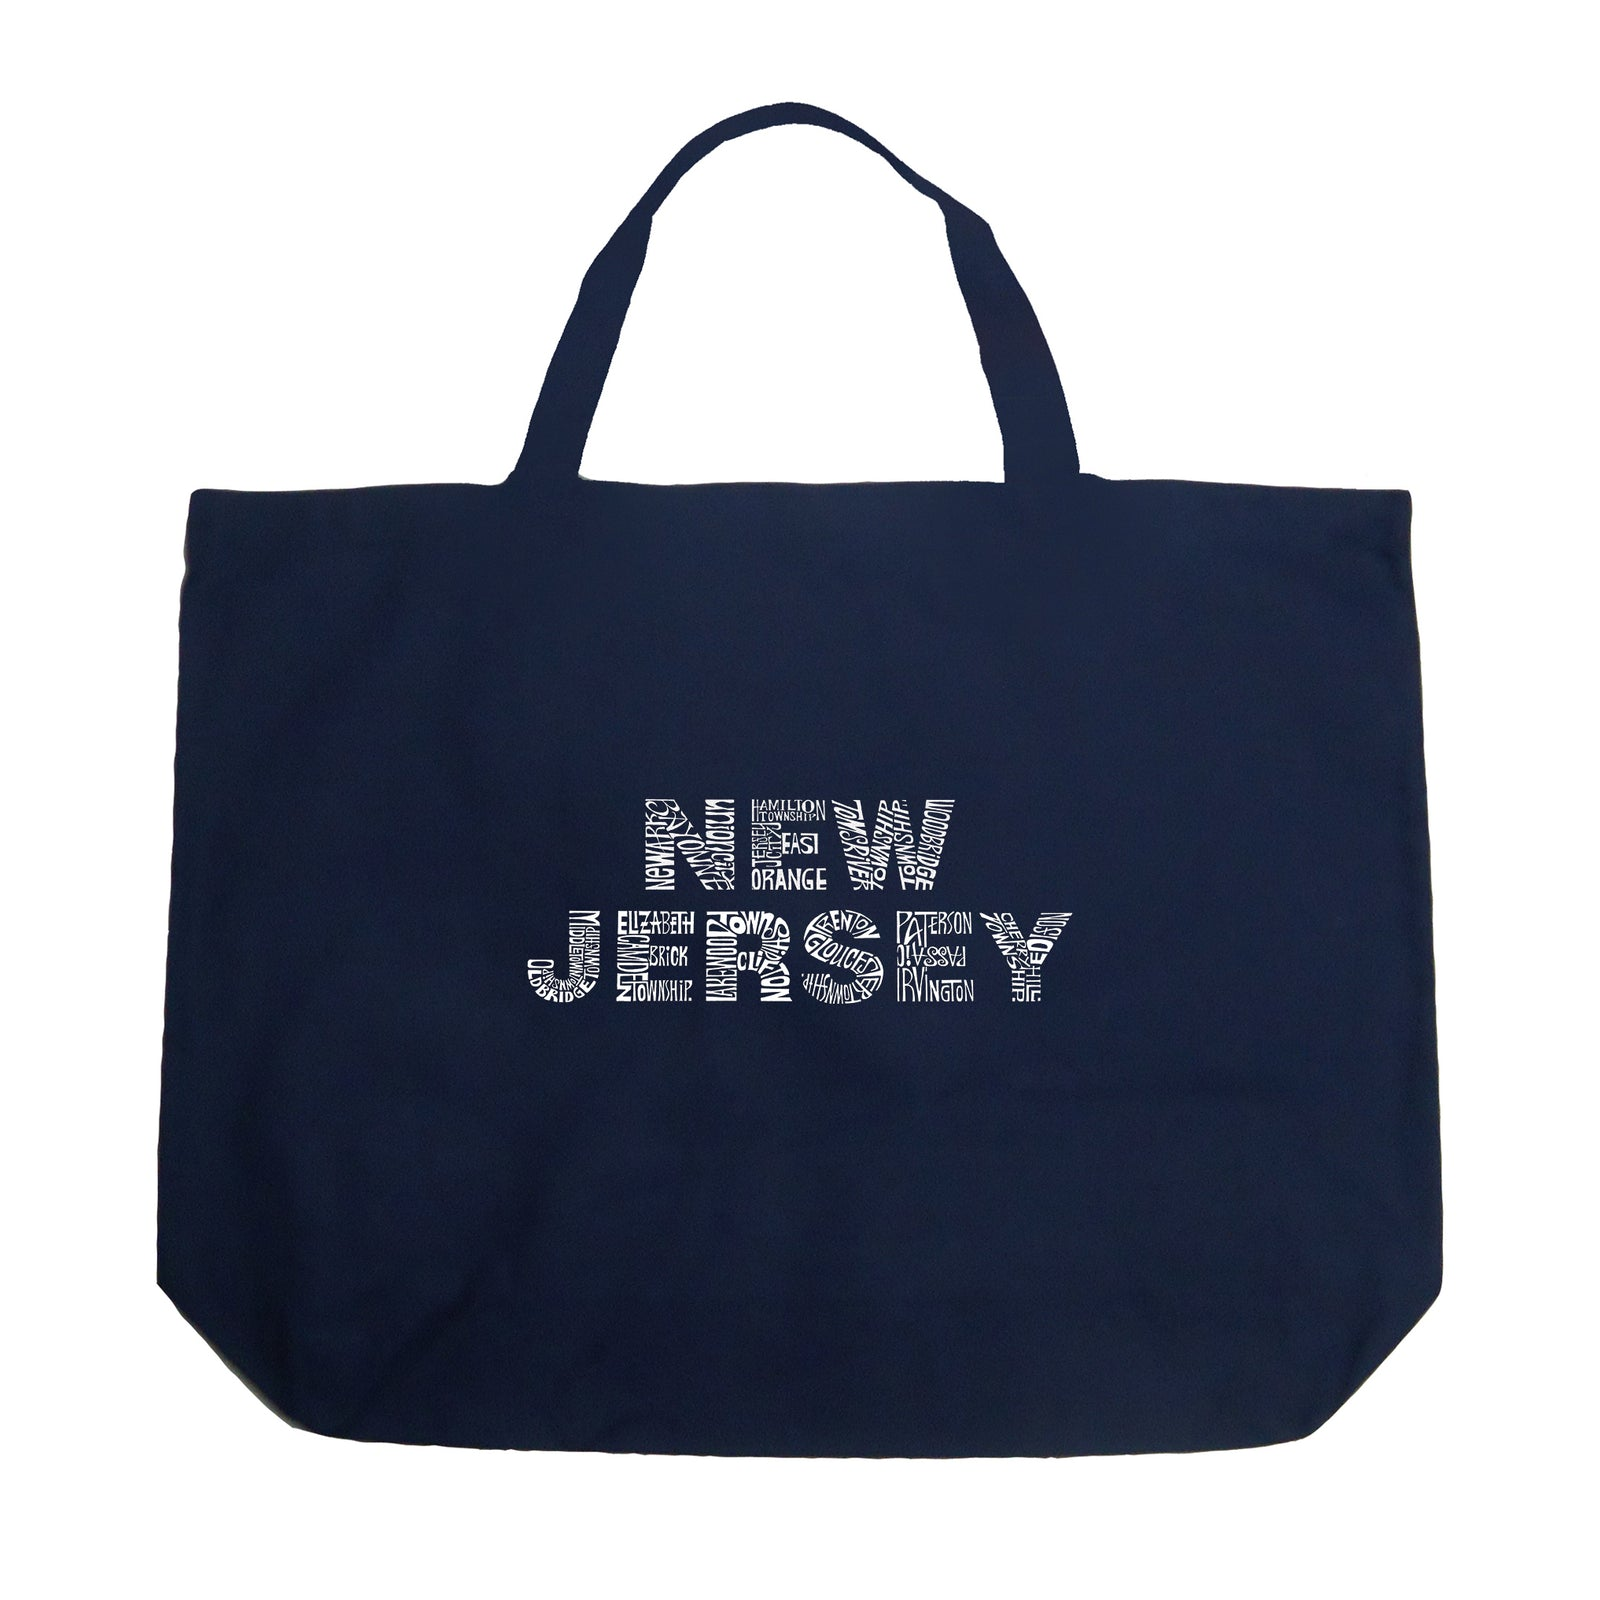 Large Tote Bag - NEW JERSEY NEIGHBORHOODS